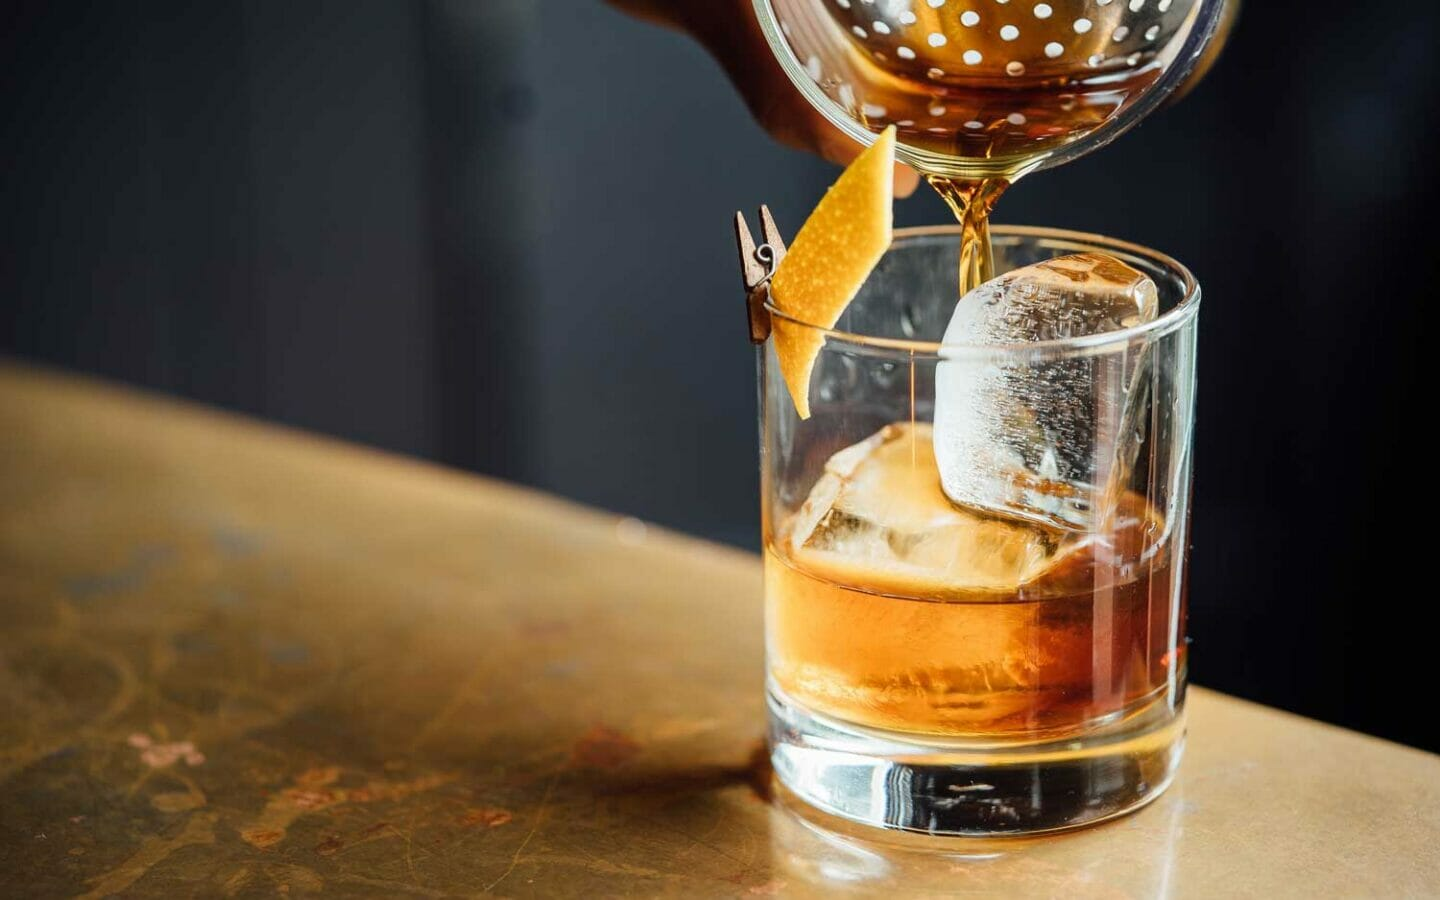 whiskey being poured into a glass with an ice cube and an orange slice inside